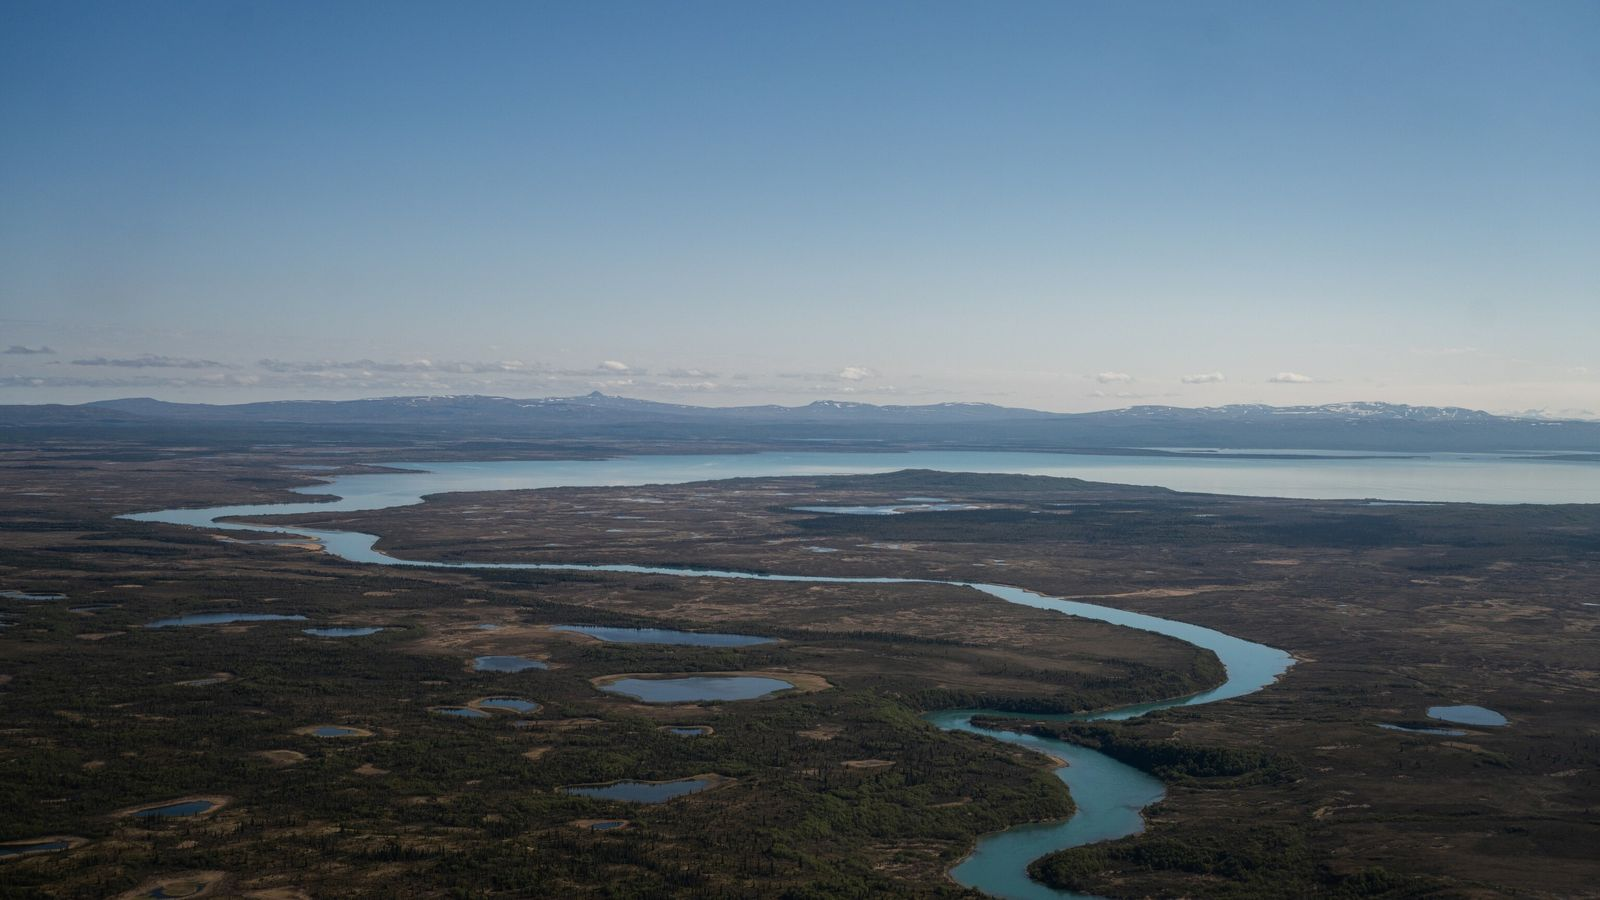 The Naknek River is 35-miles long and flows into Kvichak Bay, an arm of Bristol Bay, ...